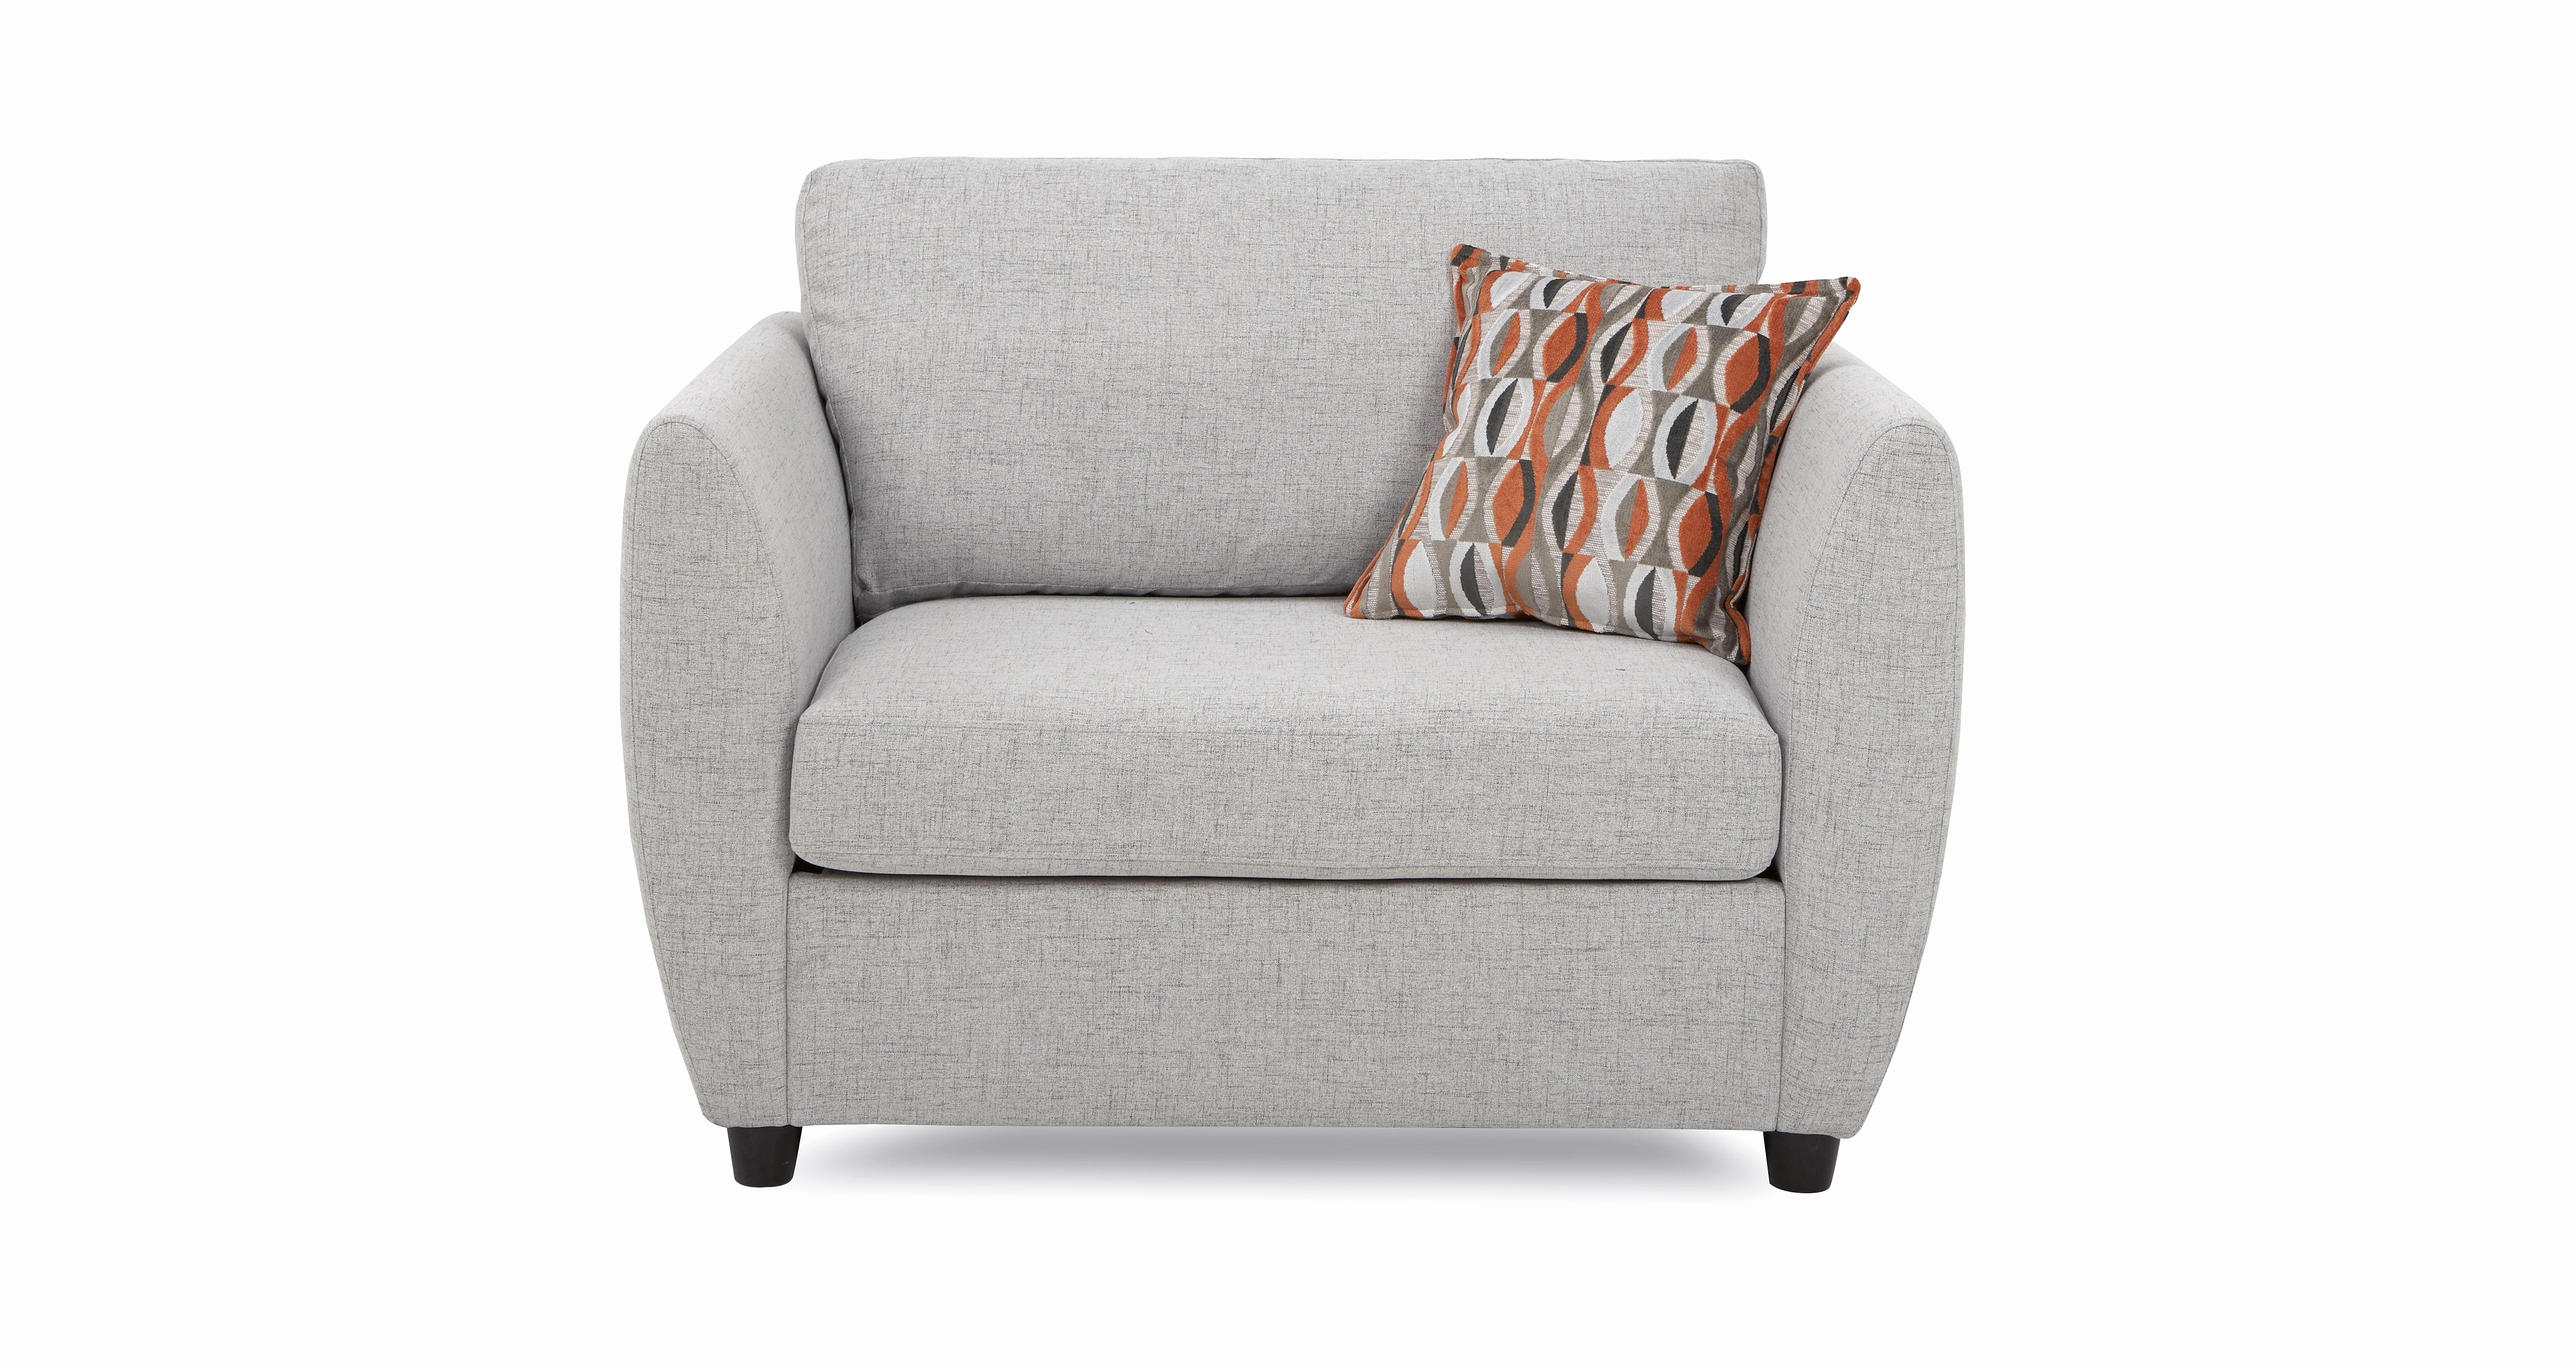 Armchair : Fancy Living Room Furniture Sets Luxury Sofa Brands In With Best And Newest Fancy Sofas (View 9 of 15)